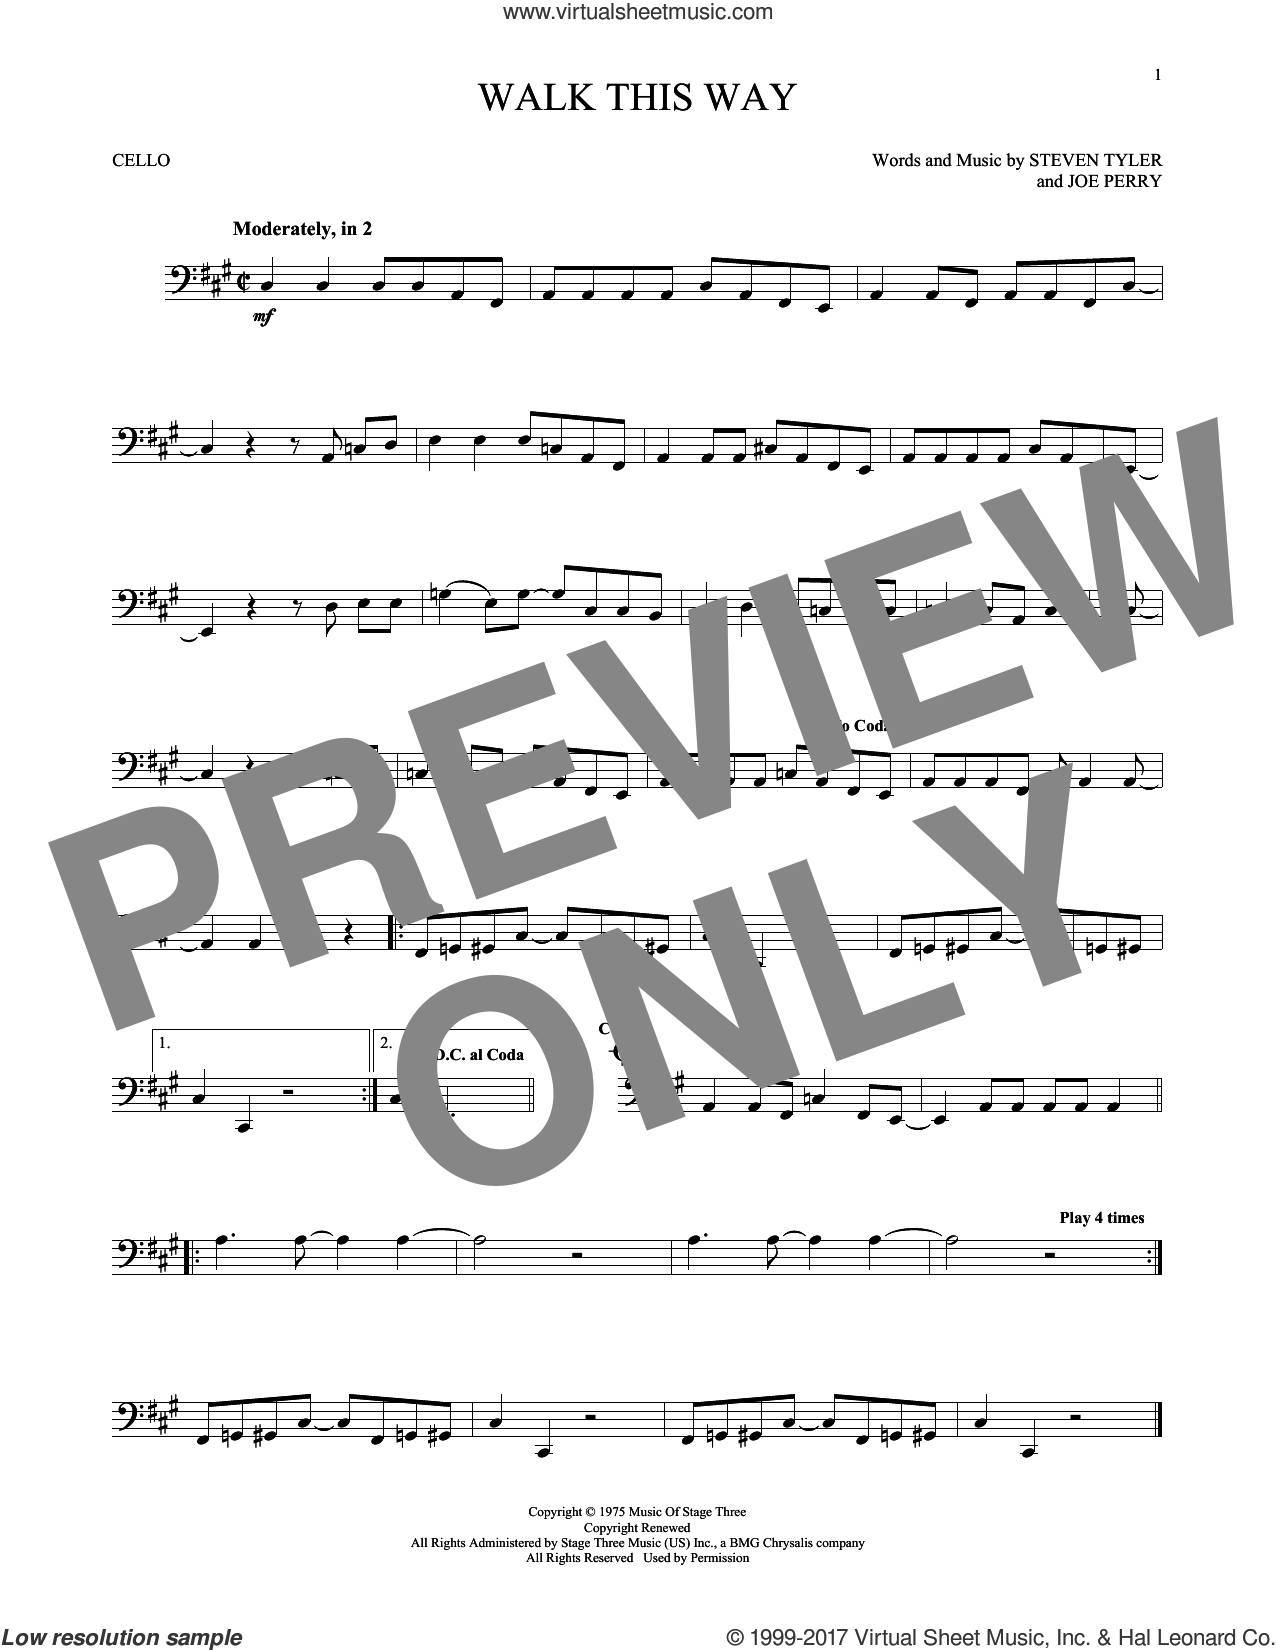 Walk This Way sheet music for cello solo by Aerosmith, Run D.M.C., Joe Perry and Steven Tyler, intermediate skill level